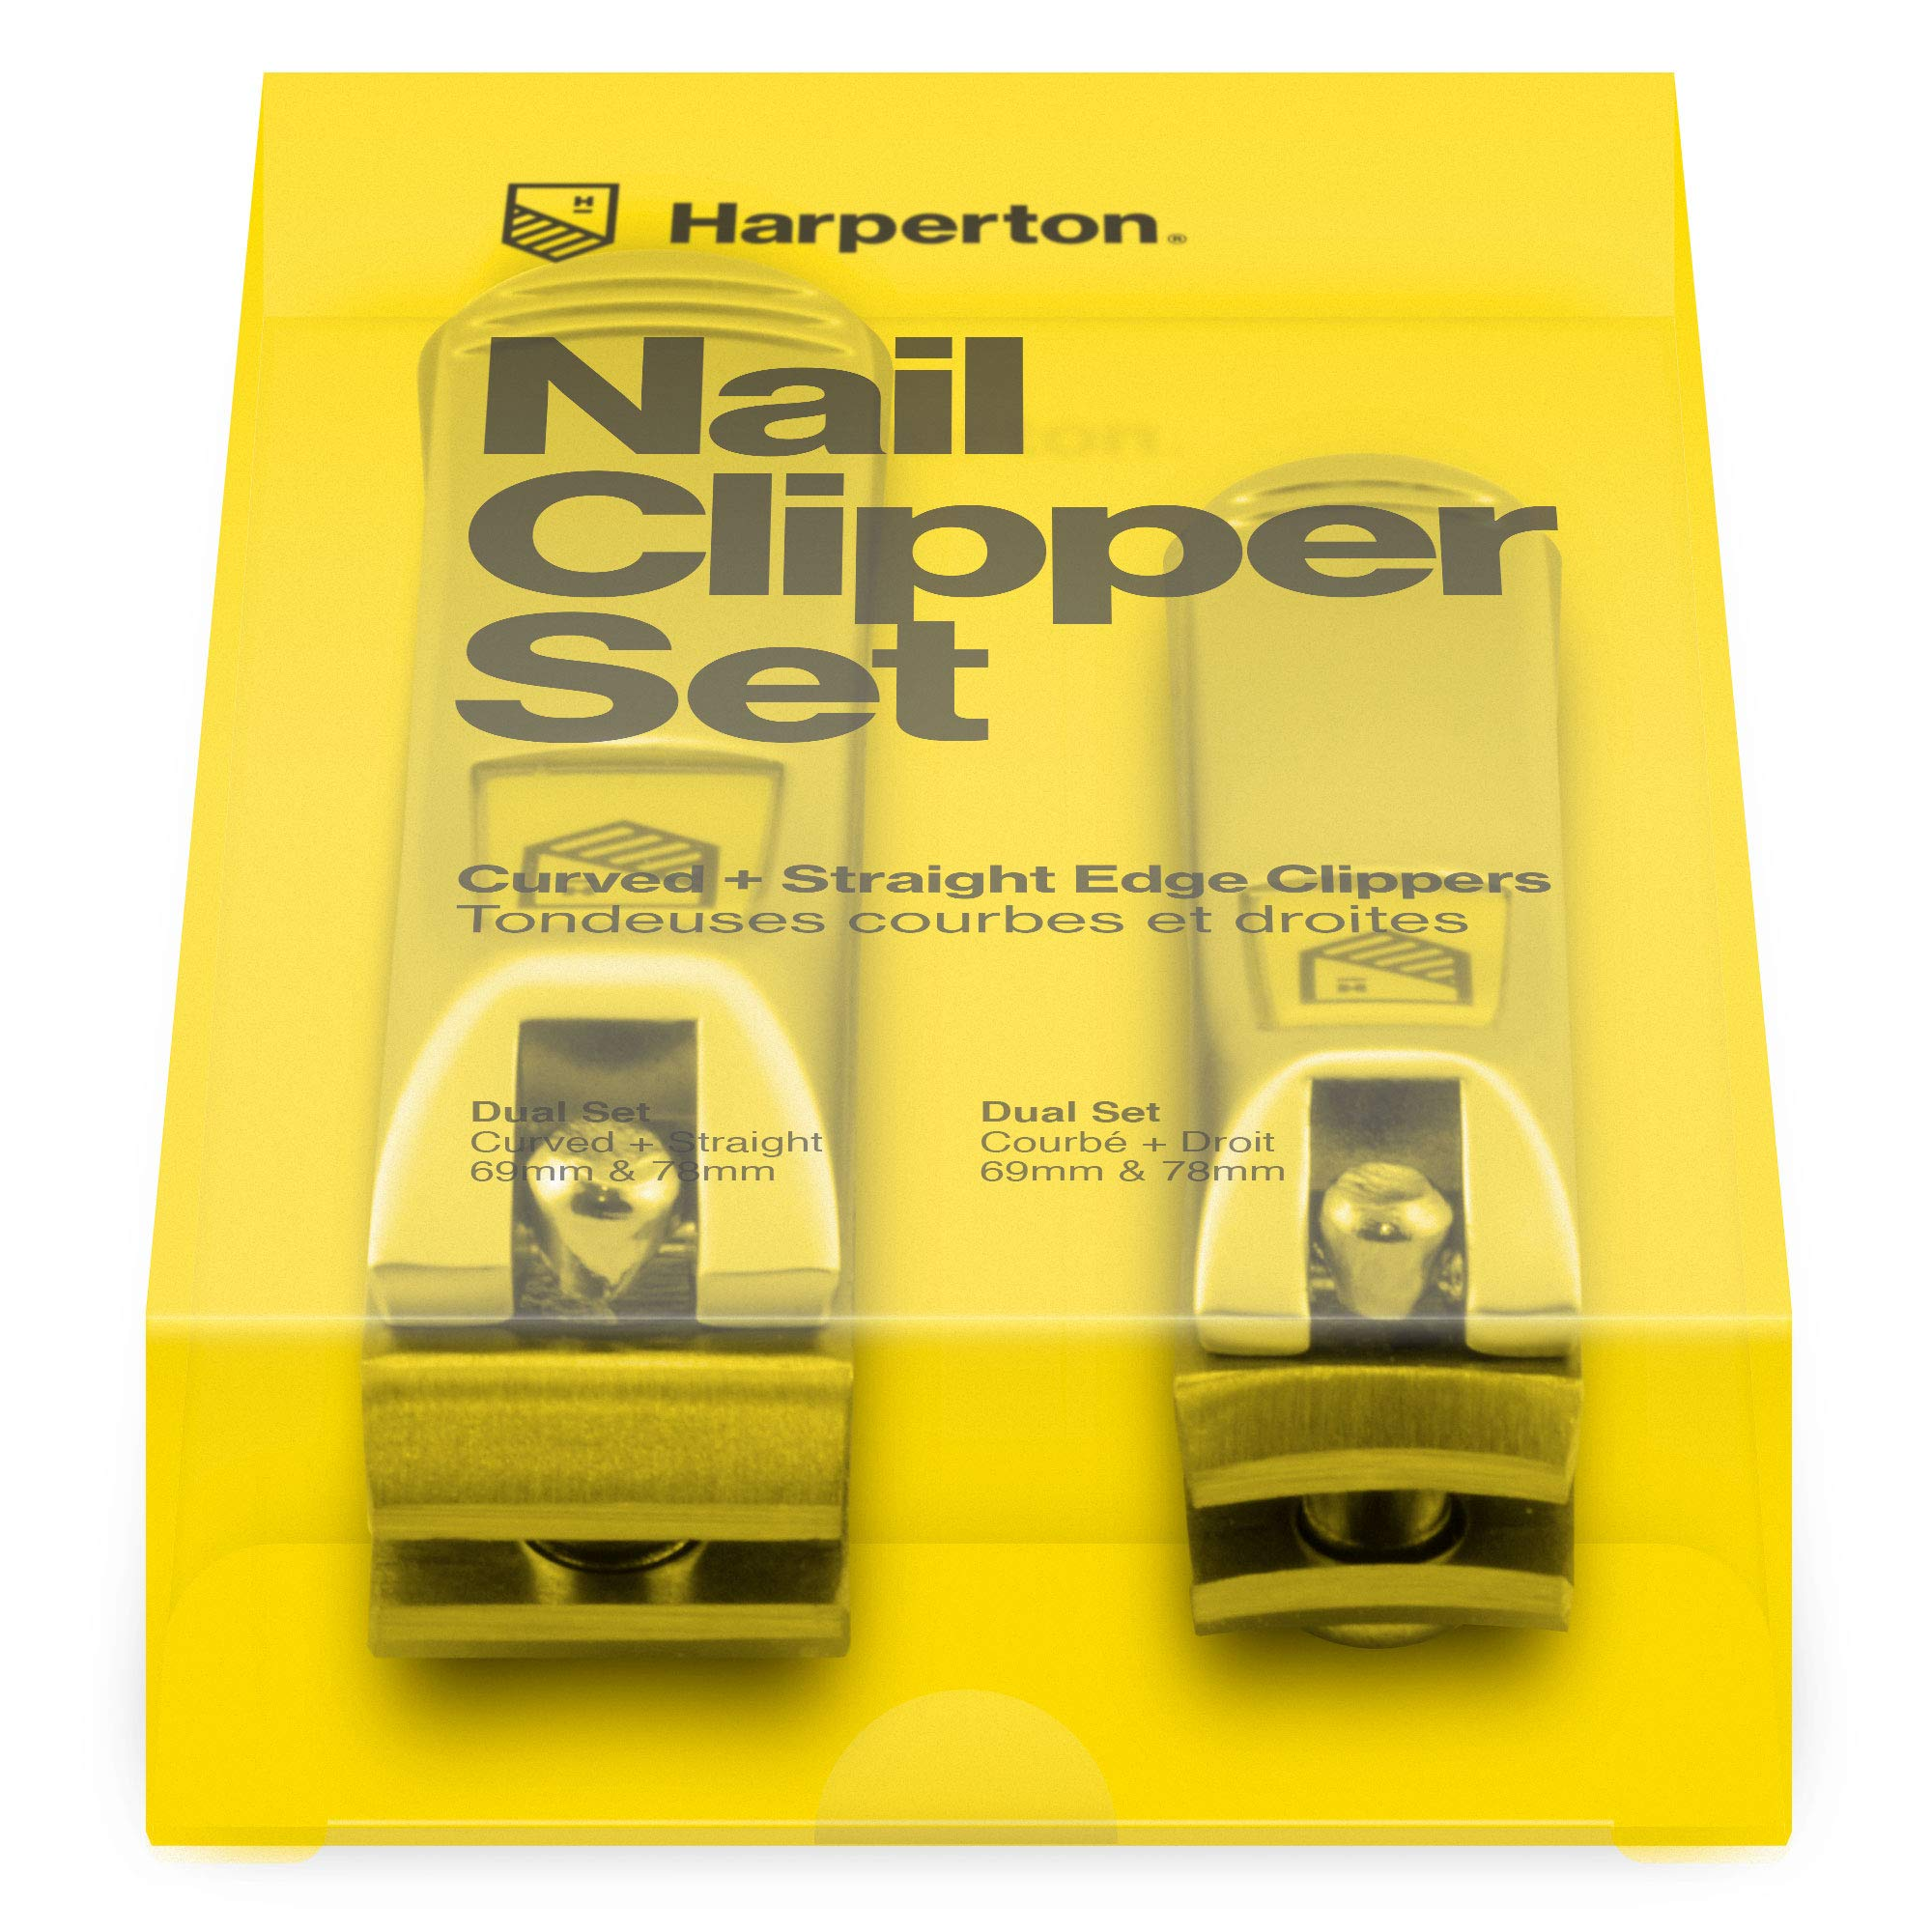 Harperton Nail Clipper Set - Fingernail and Toenail Clipper (Curved + Straight Jaw) by Harperton